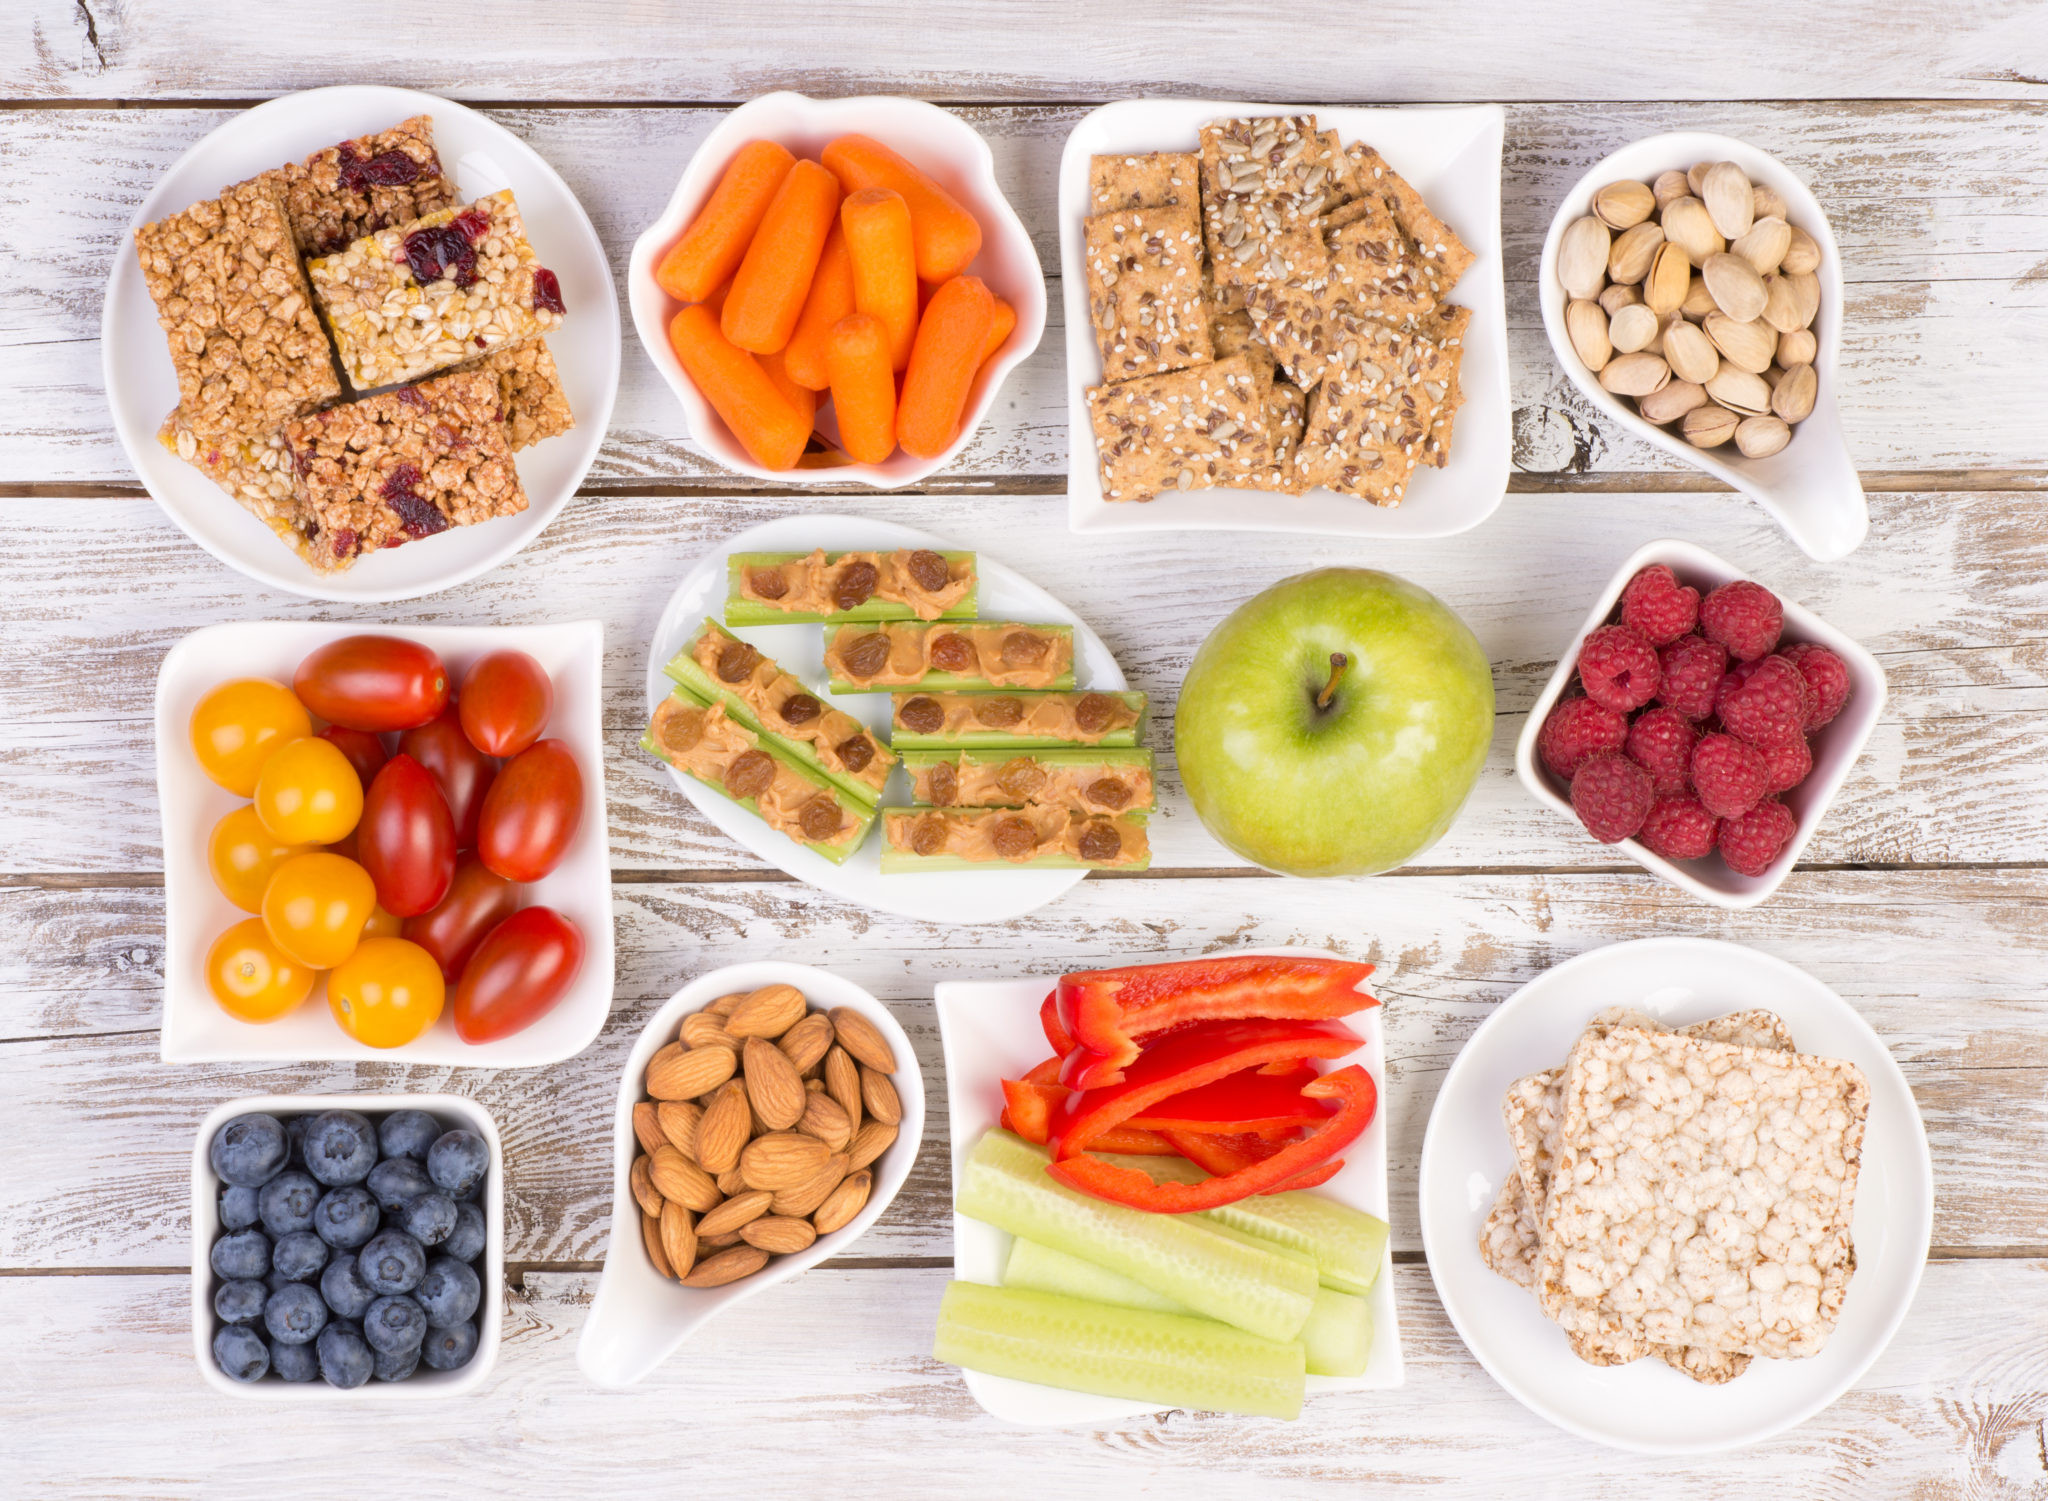 Pictures Of Healthy Snacks  How to Snack Smart at Bedtime – Diabetes Daily